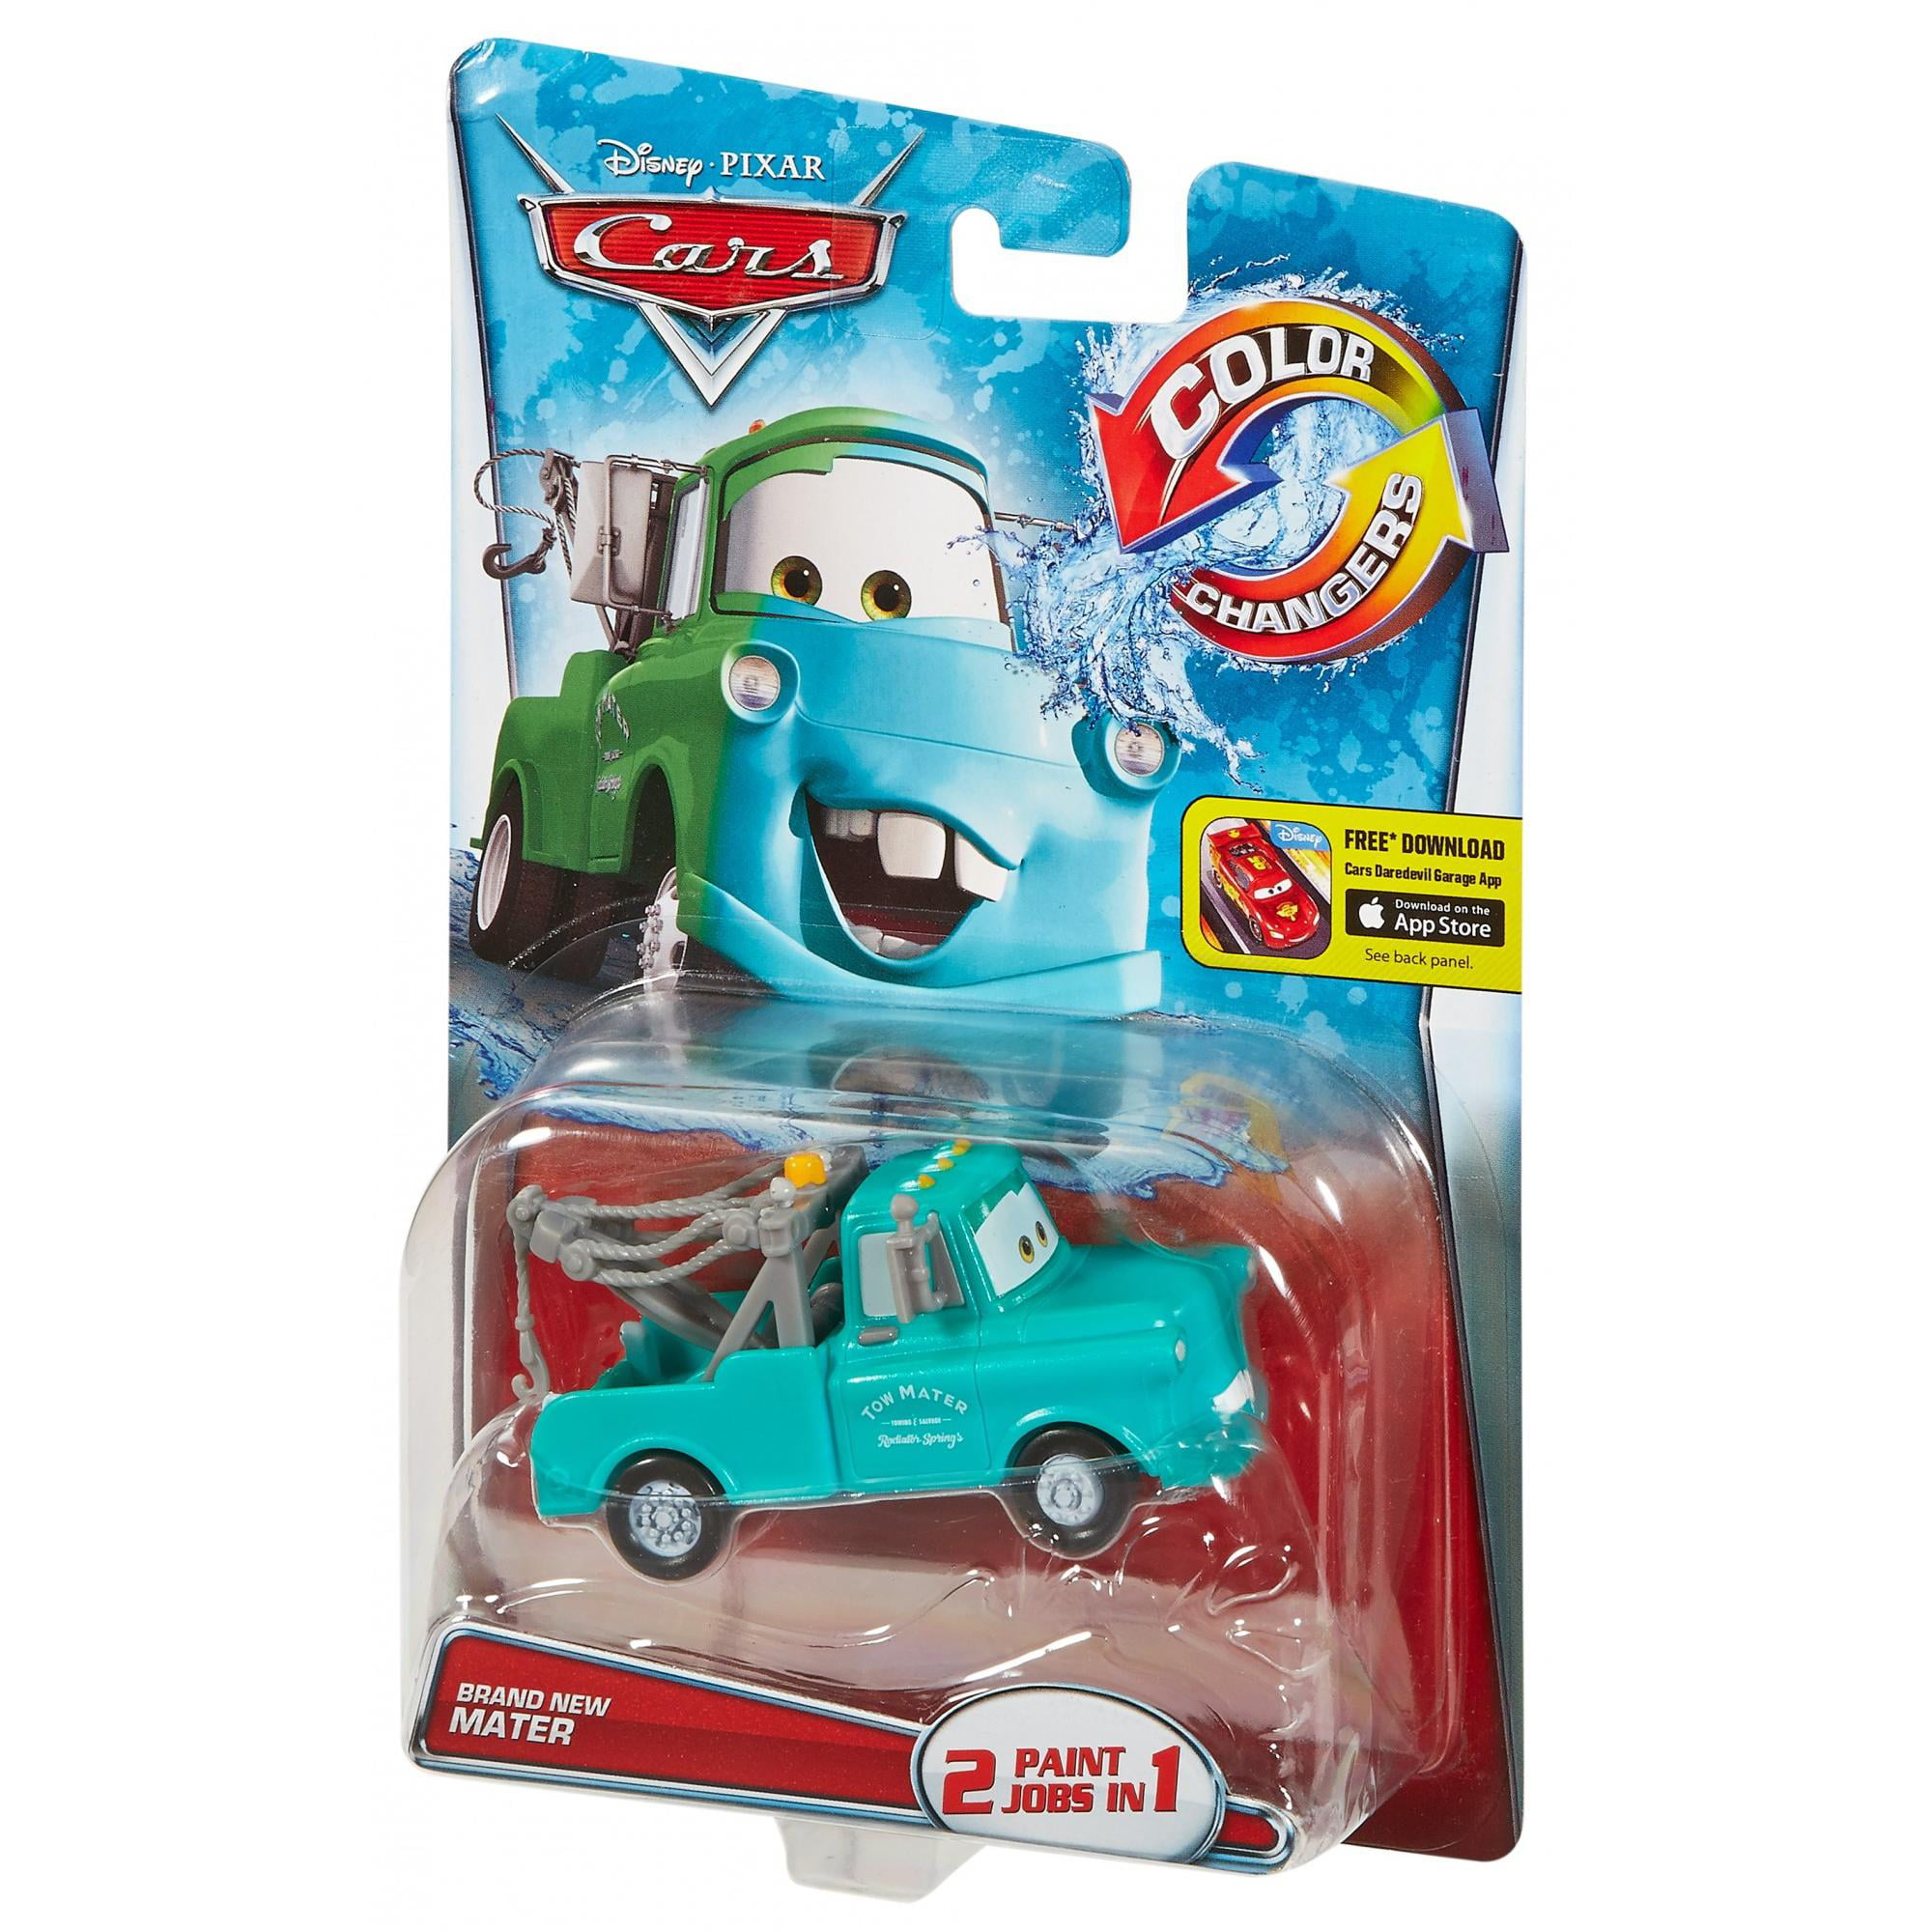 Disney Pixar Cars Color Change Mater Tiendamia Com